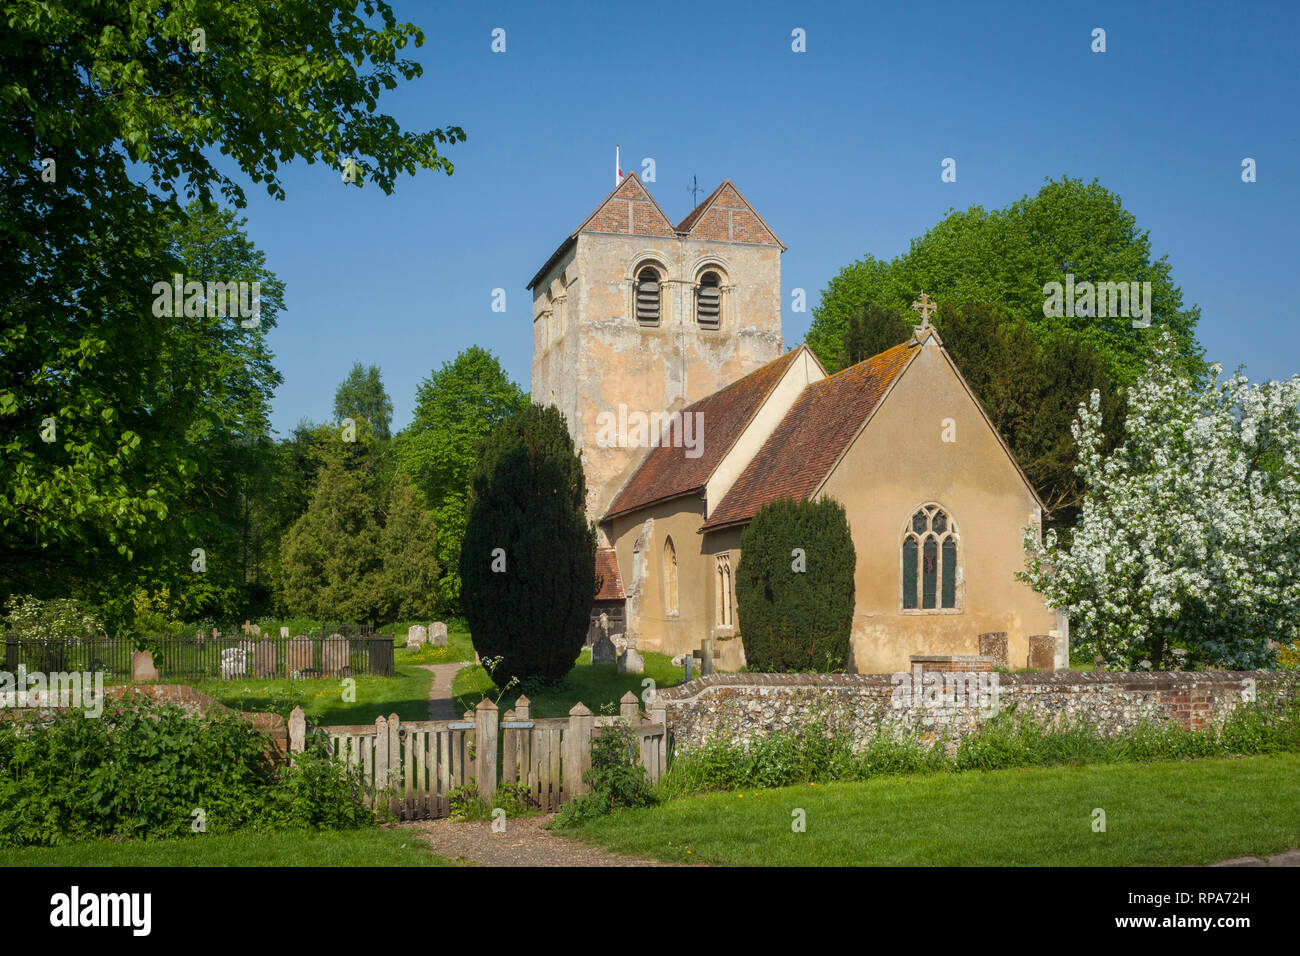 The Church of St. Bartholomew in the village of Fingest, Buckinghamshire. - Stock Image